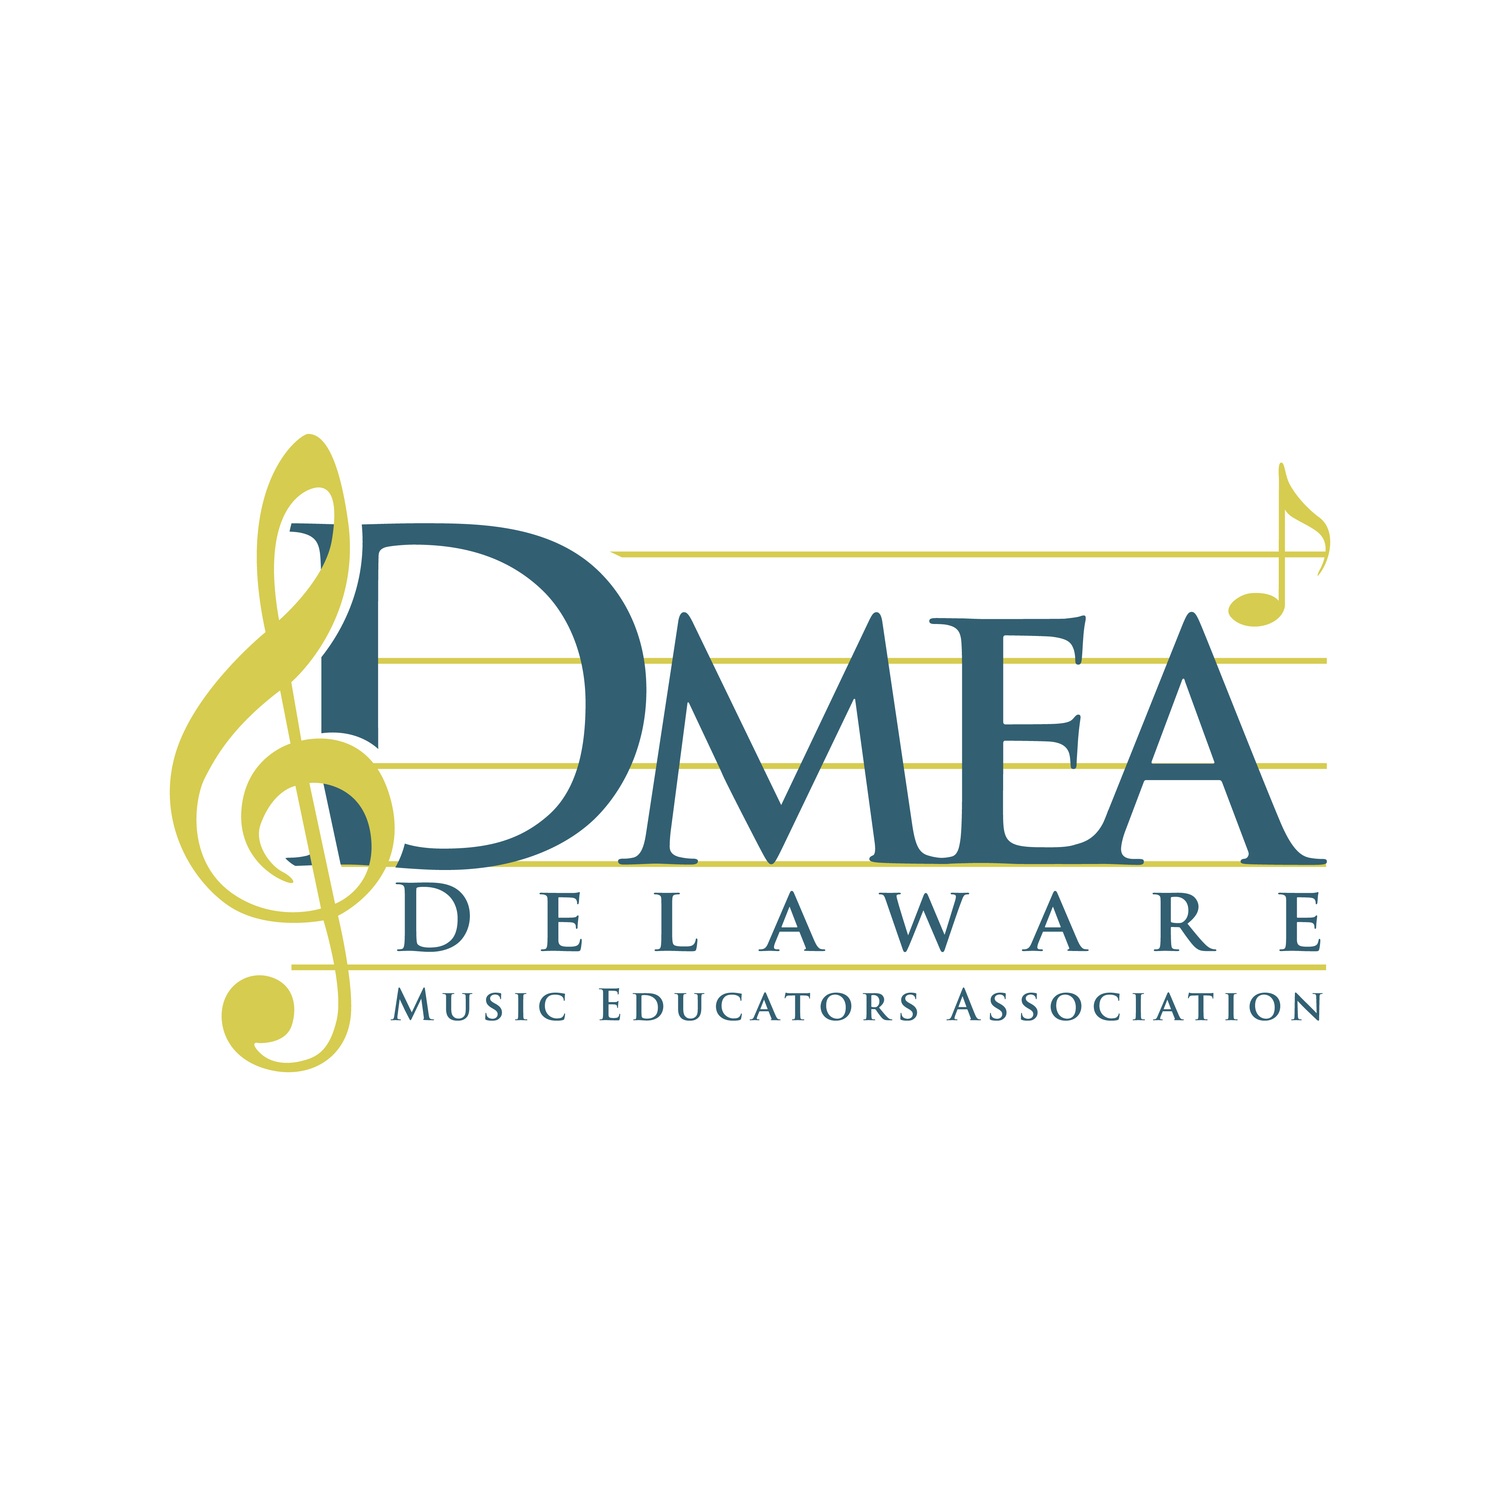 Delaware Music Educators Association